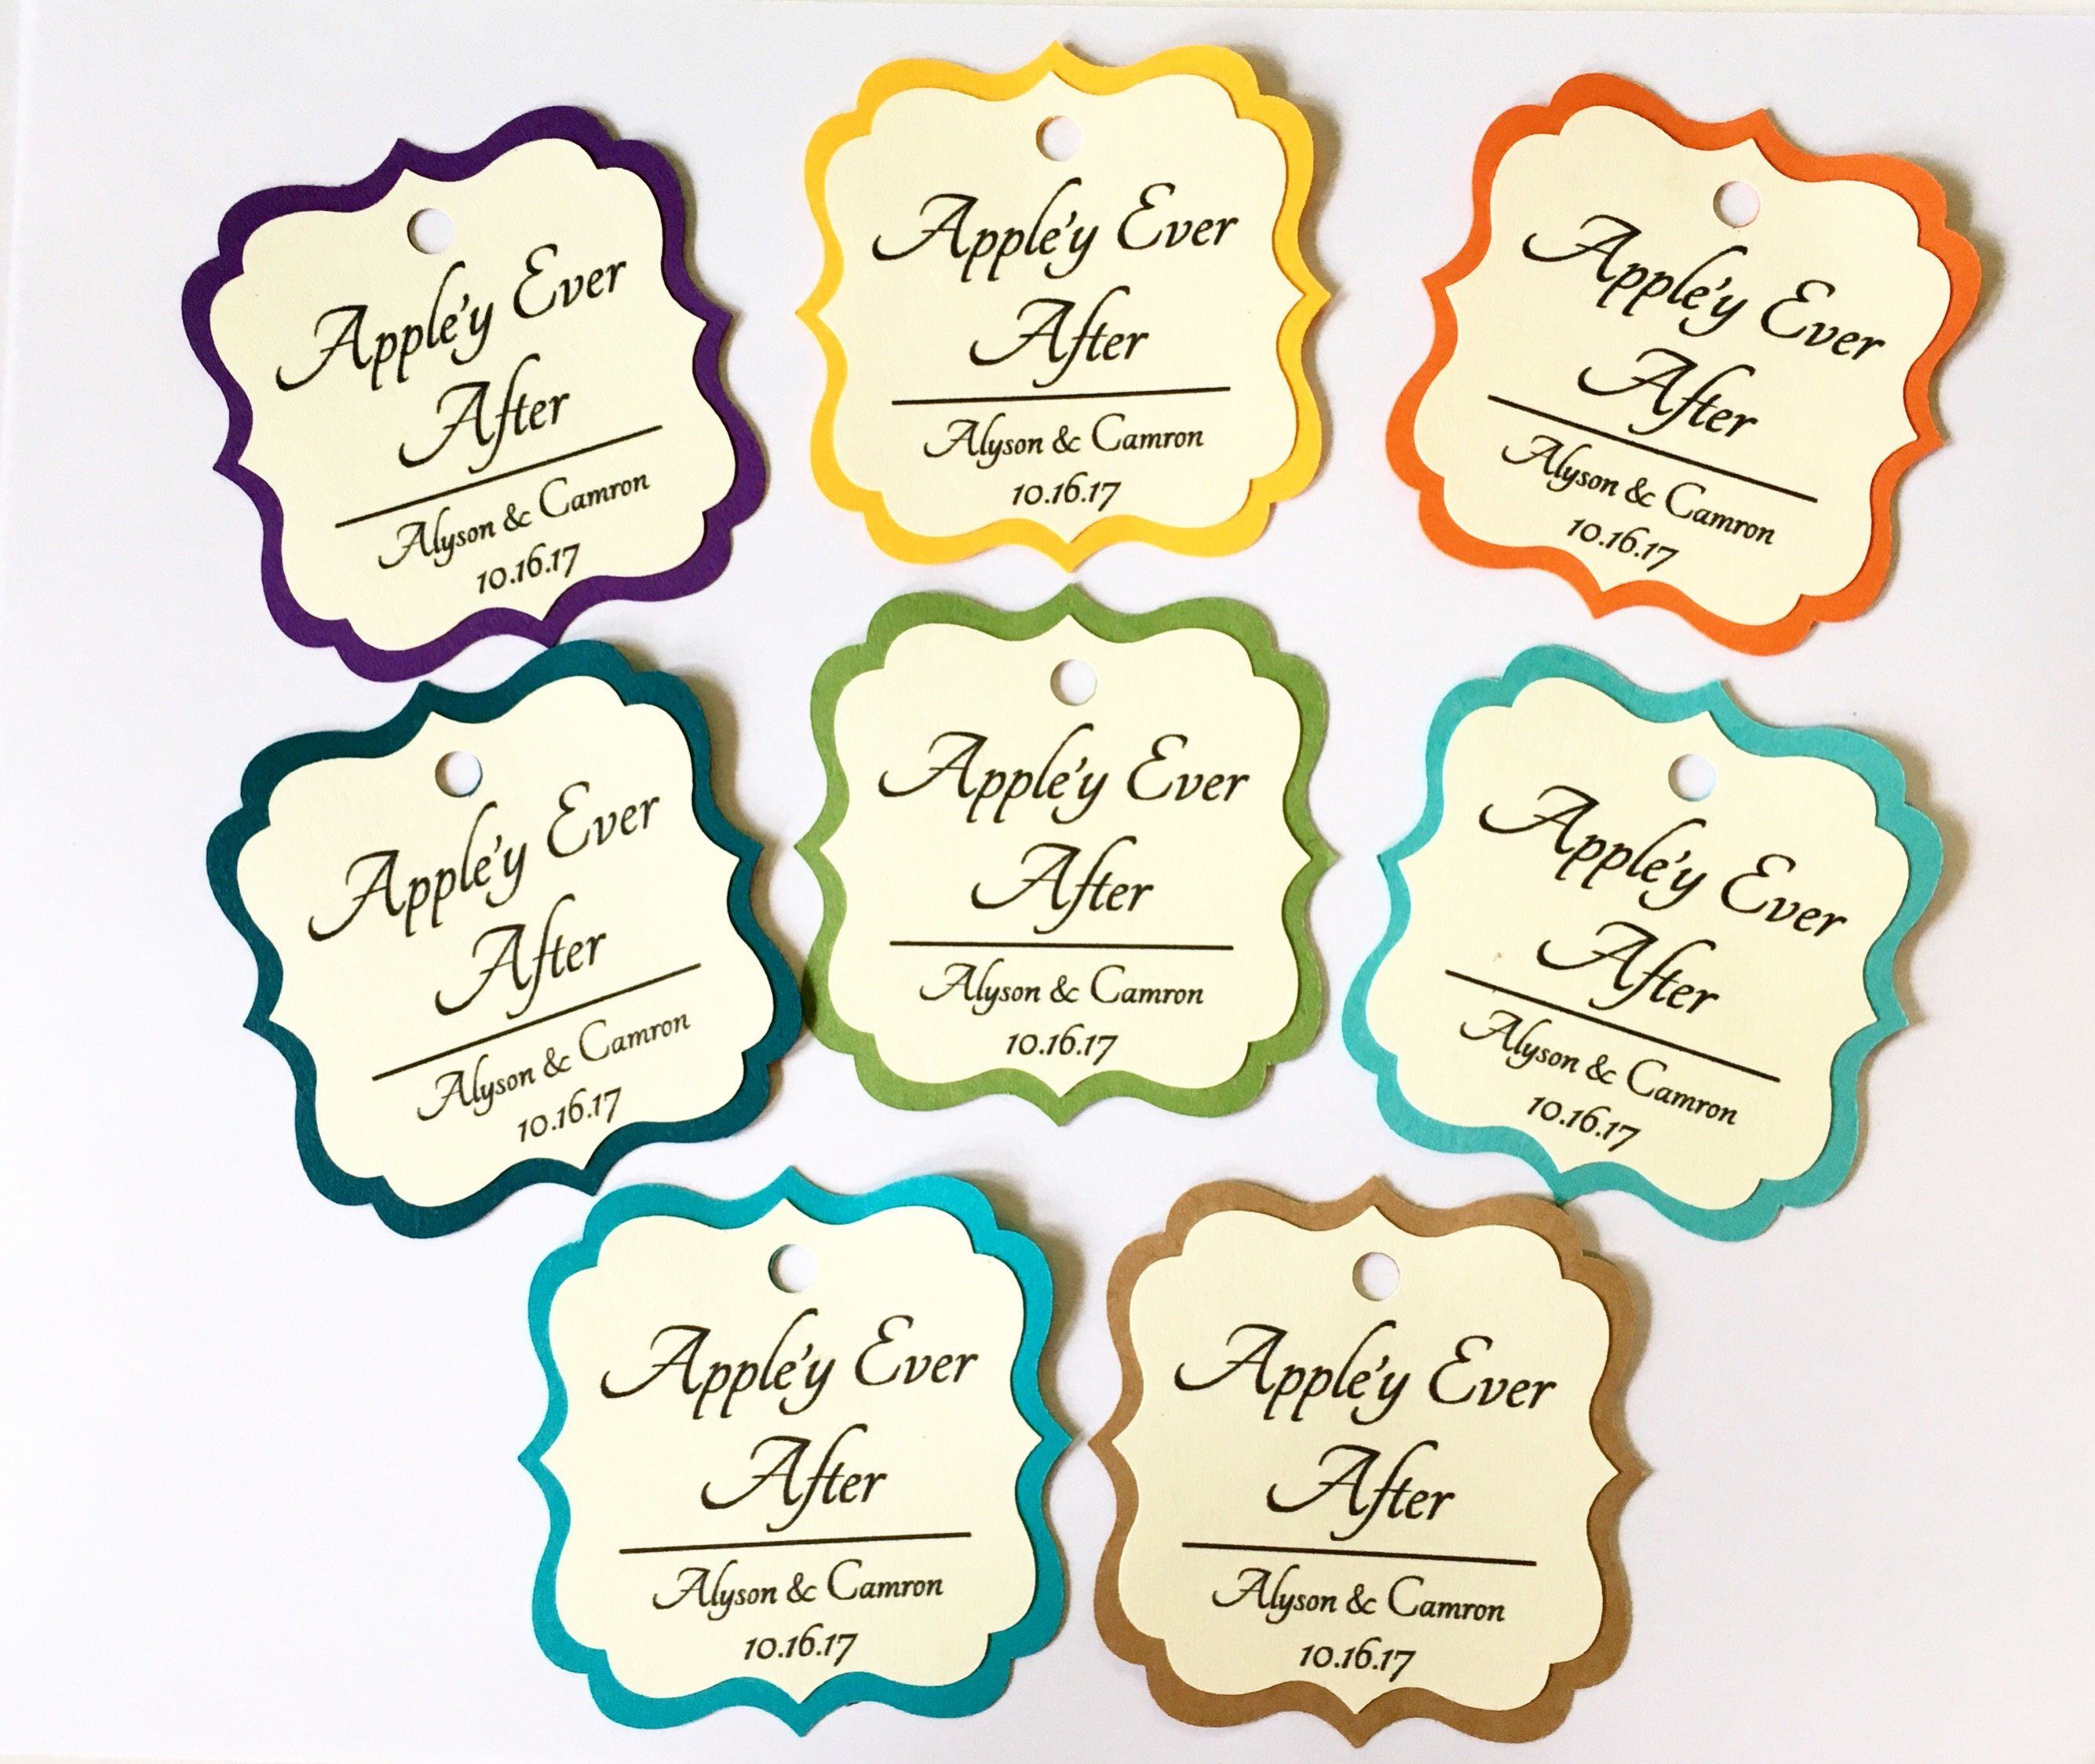 Personalized Appley Ever After Wedding Favor Tags. Select AMOUNT ...